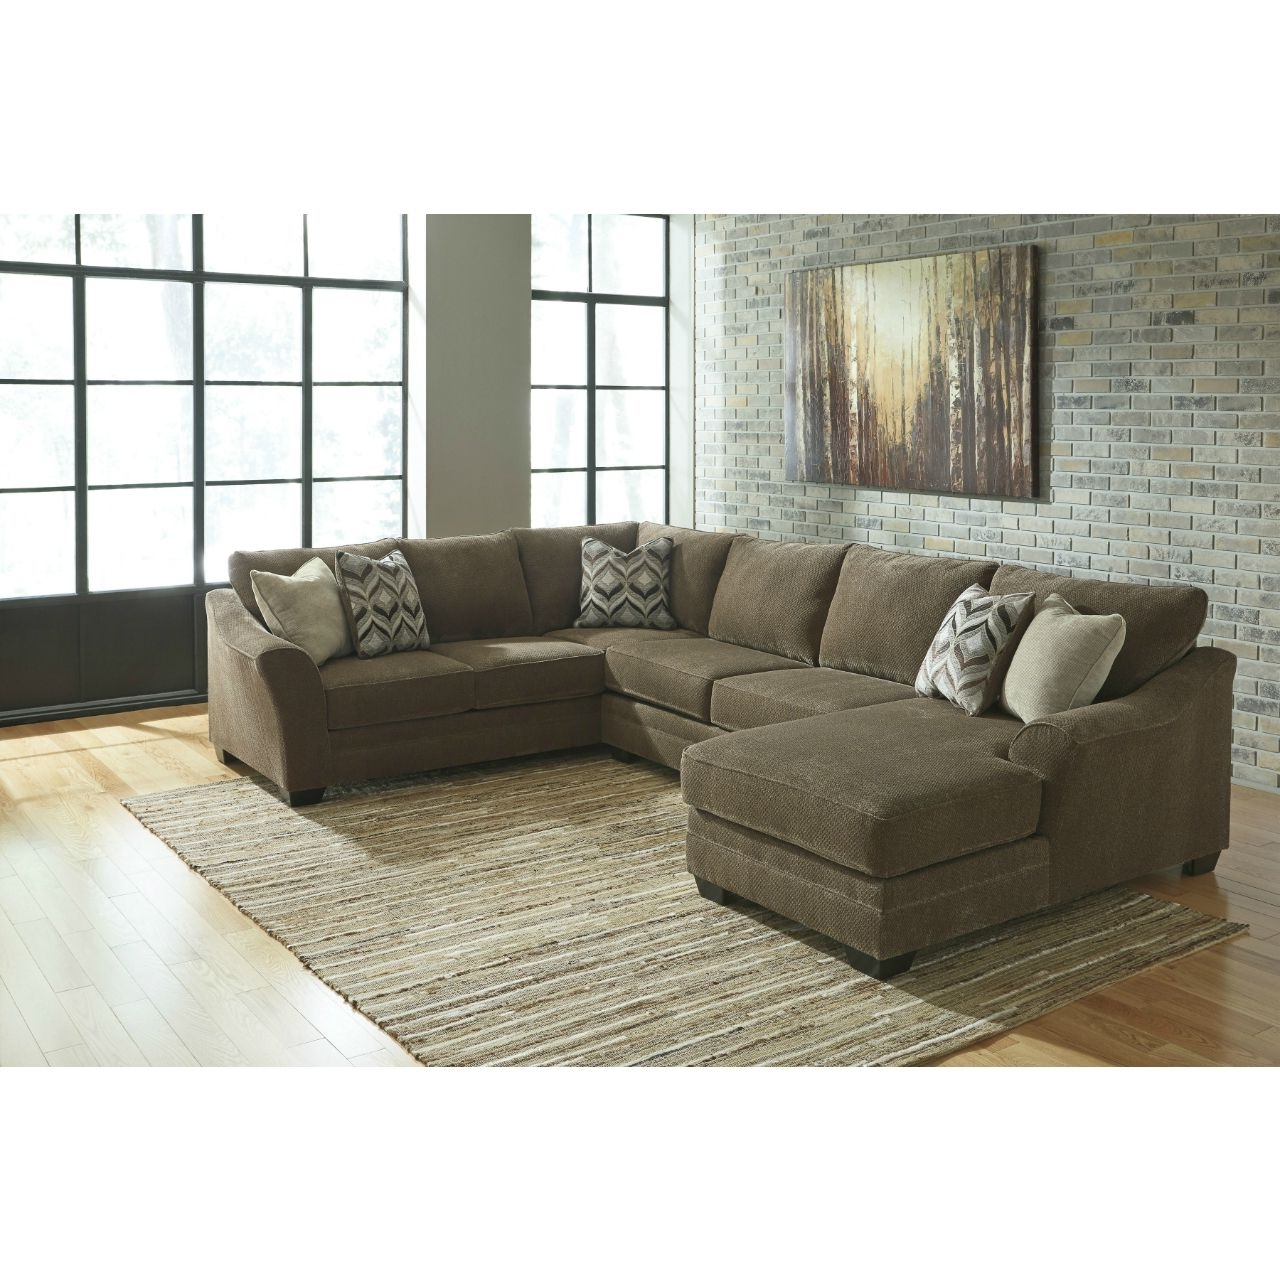 Douglas 3 Piece Sectional (View 3 of 15)